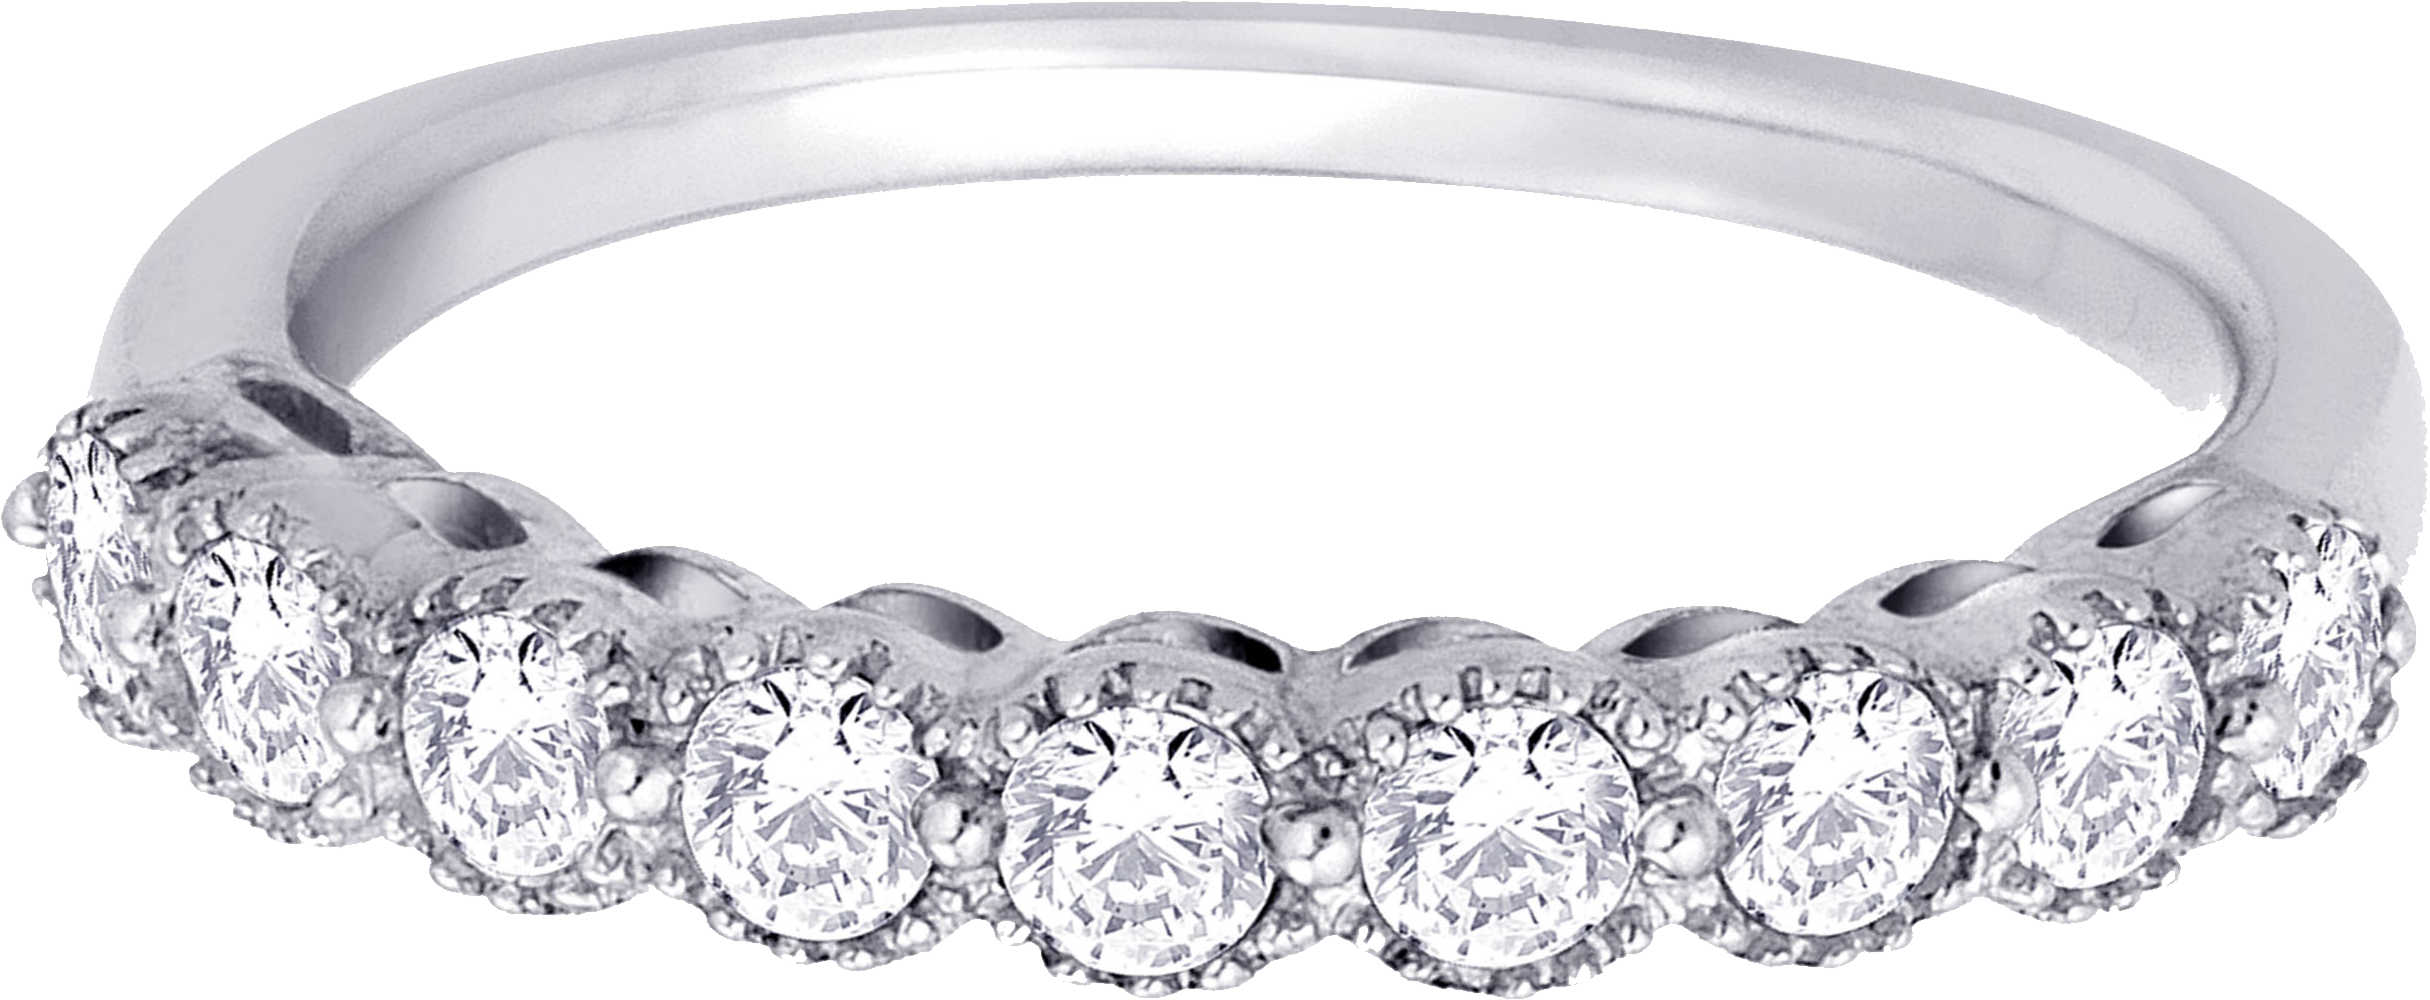 Silver jewellery png image. Diamonds clipart jewelry